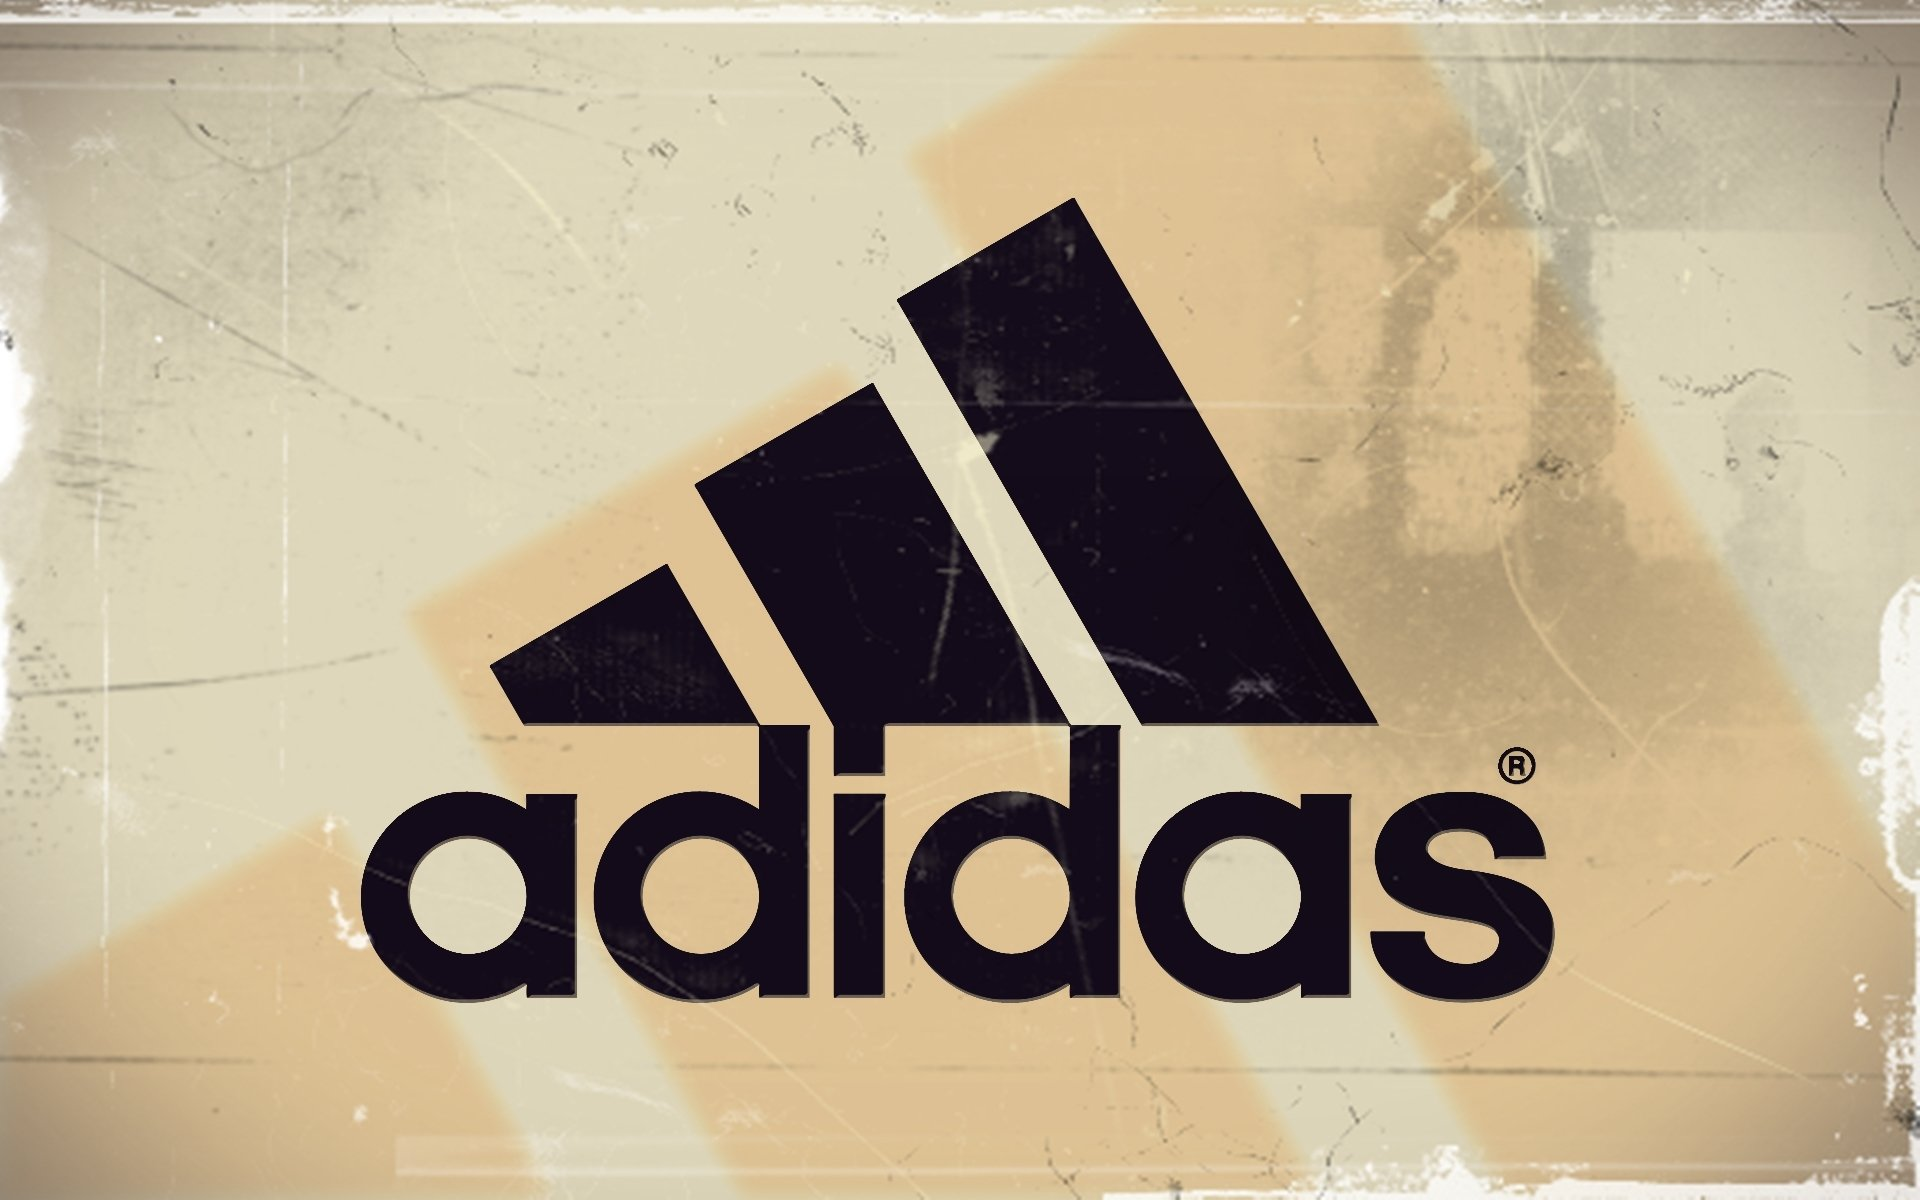 adidas group vision and mission